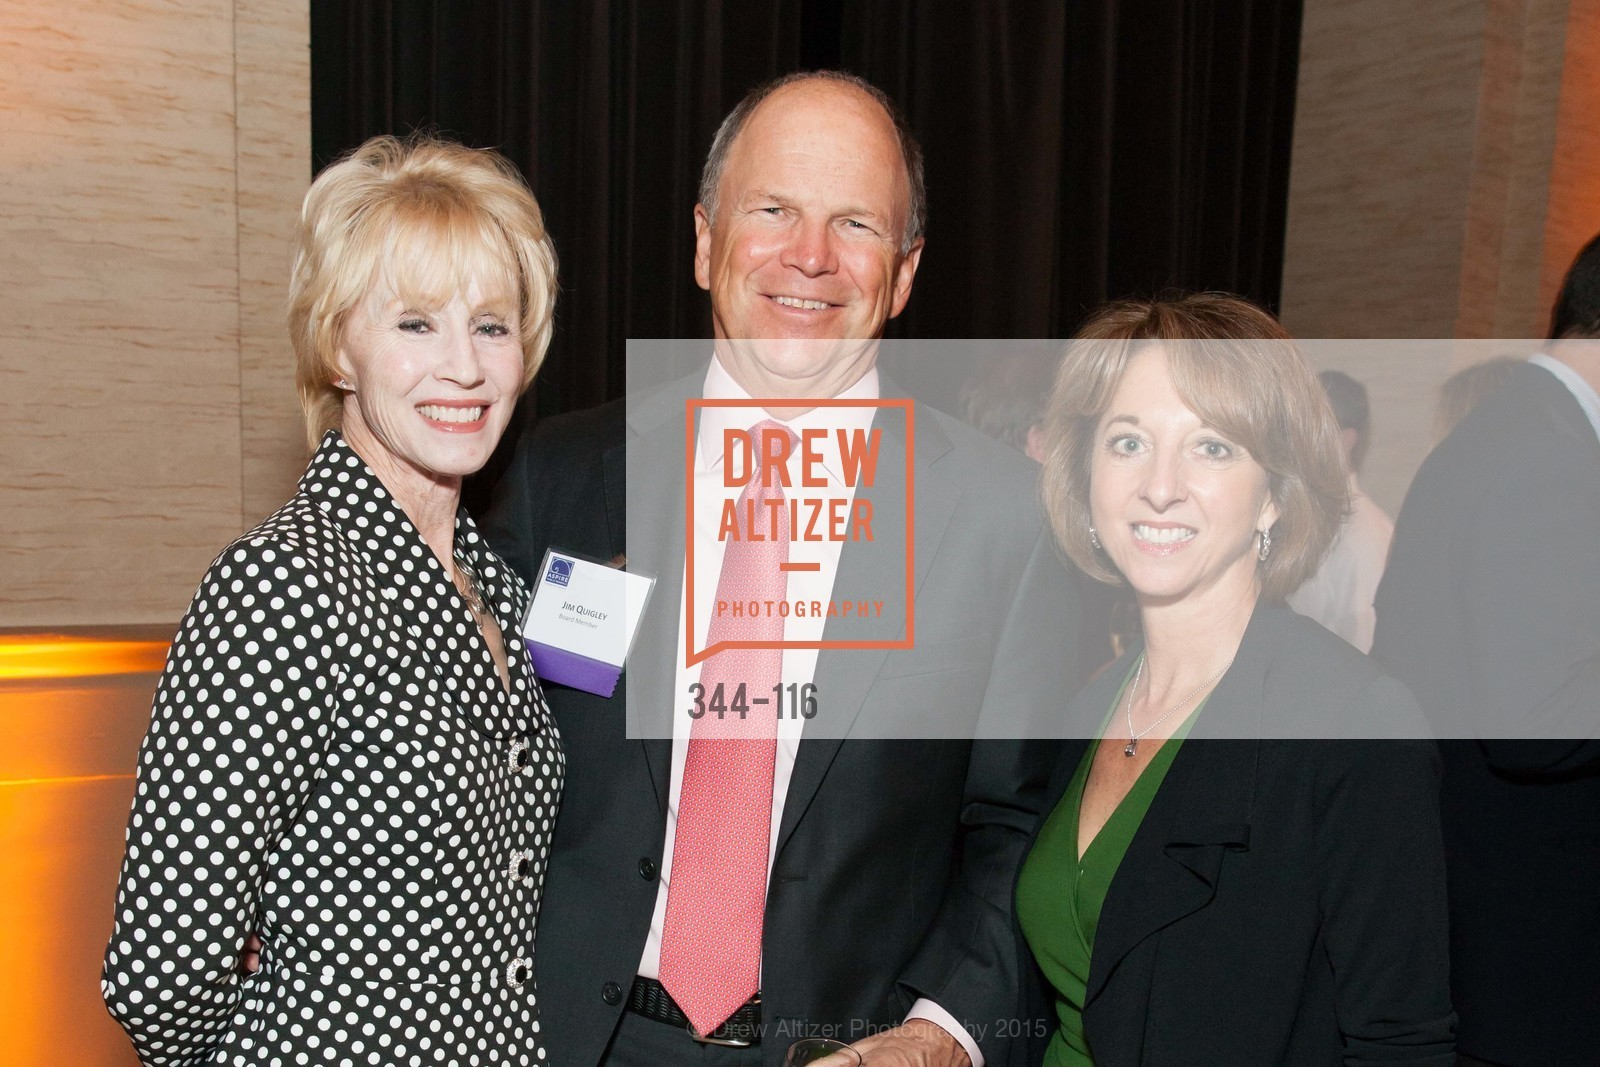 Jim Quigley, Teresa Briggs, Bonnie Quigley, Aspire Public Schools 2nd Annual Gala, Bently Reserve, May 20th, 2015,Drew Altizer, Drew Altizer Photography, full-service event agency, private events, San Francisco photographer, photographer California